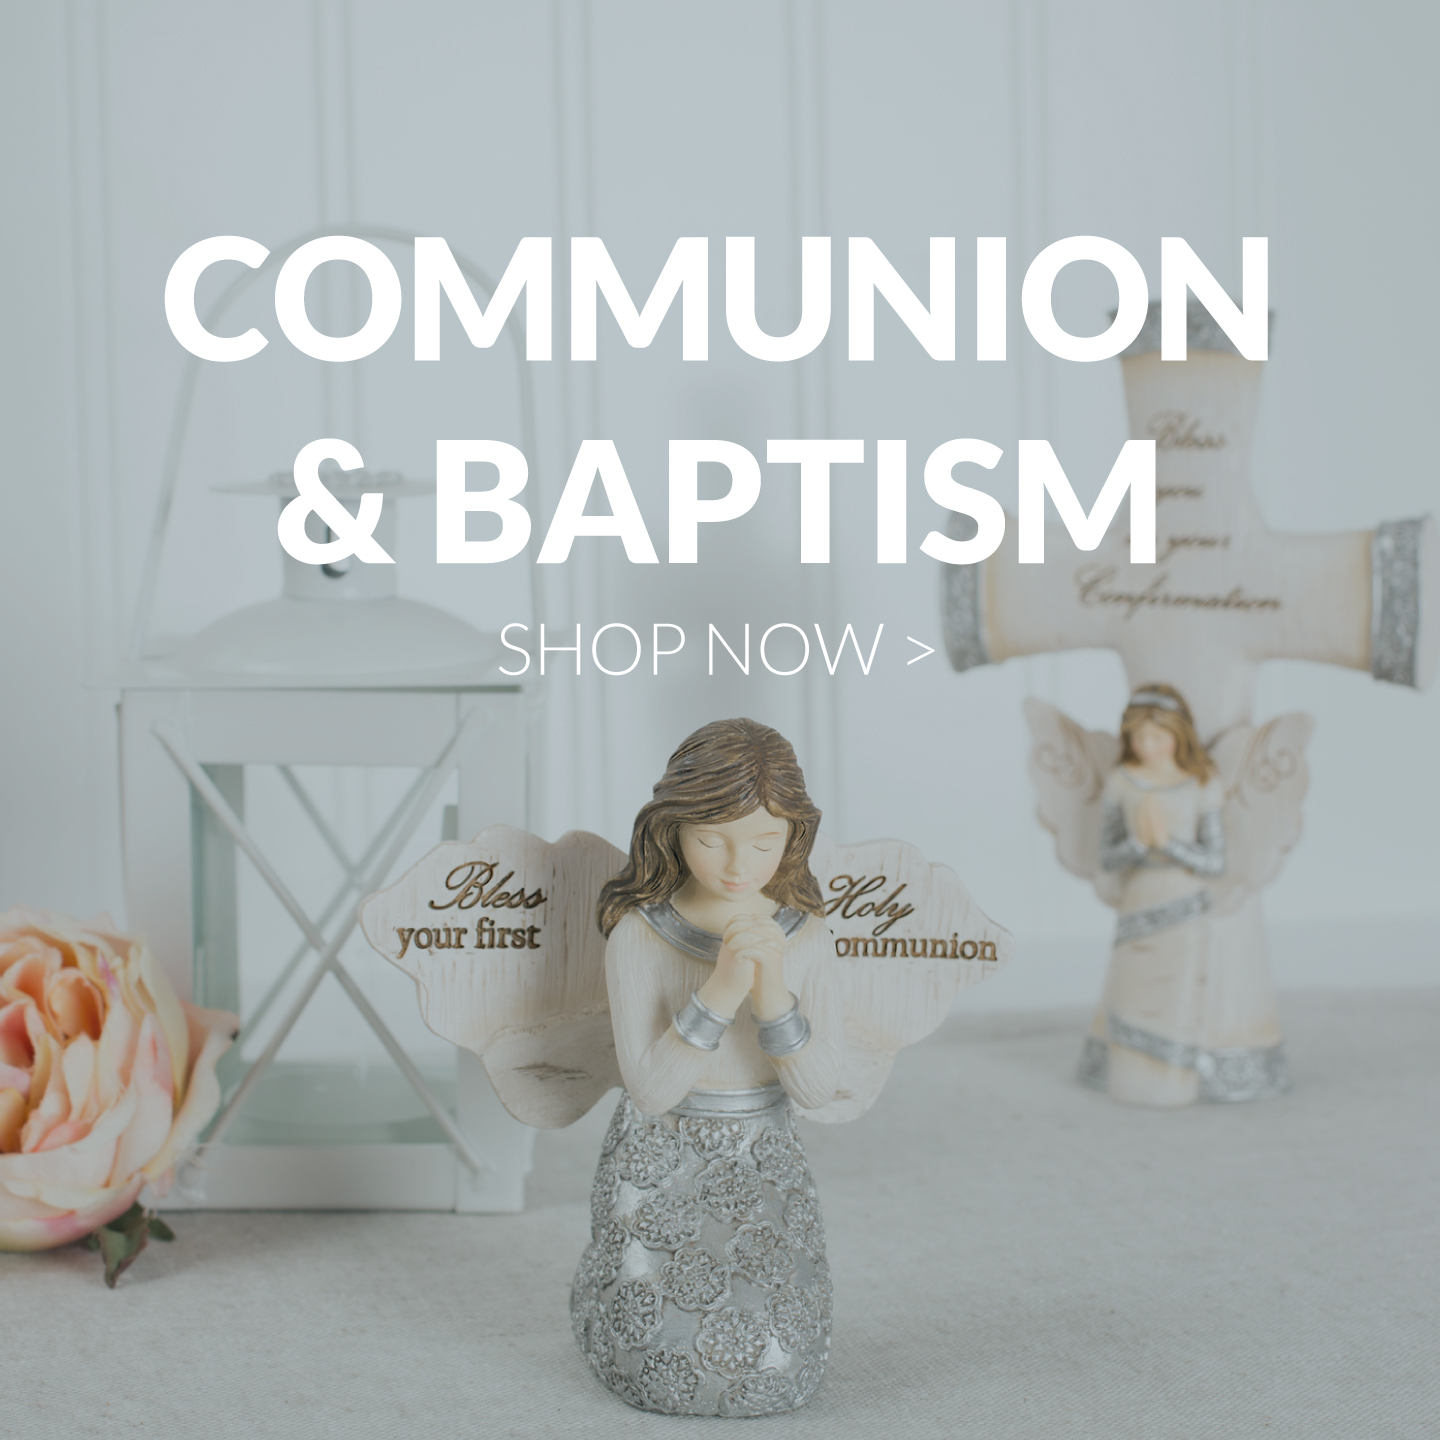 Communion & Baptism